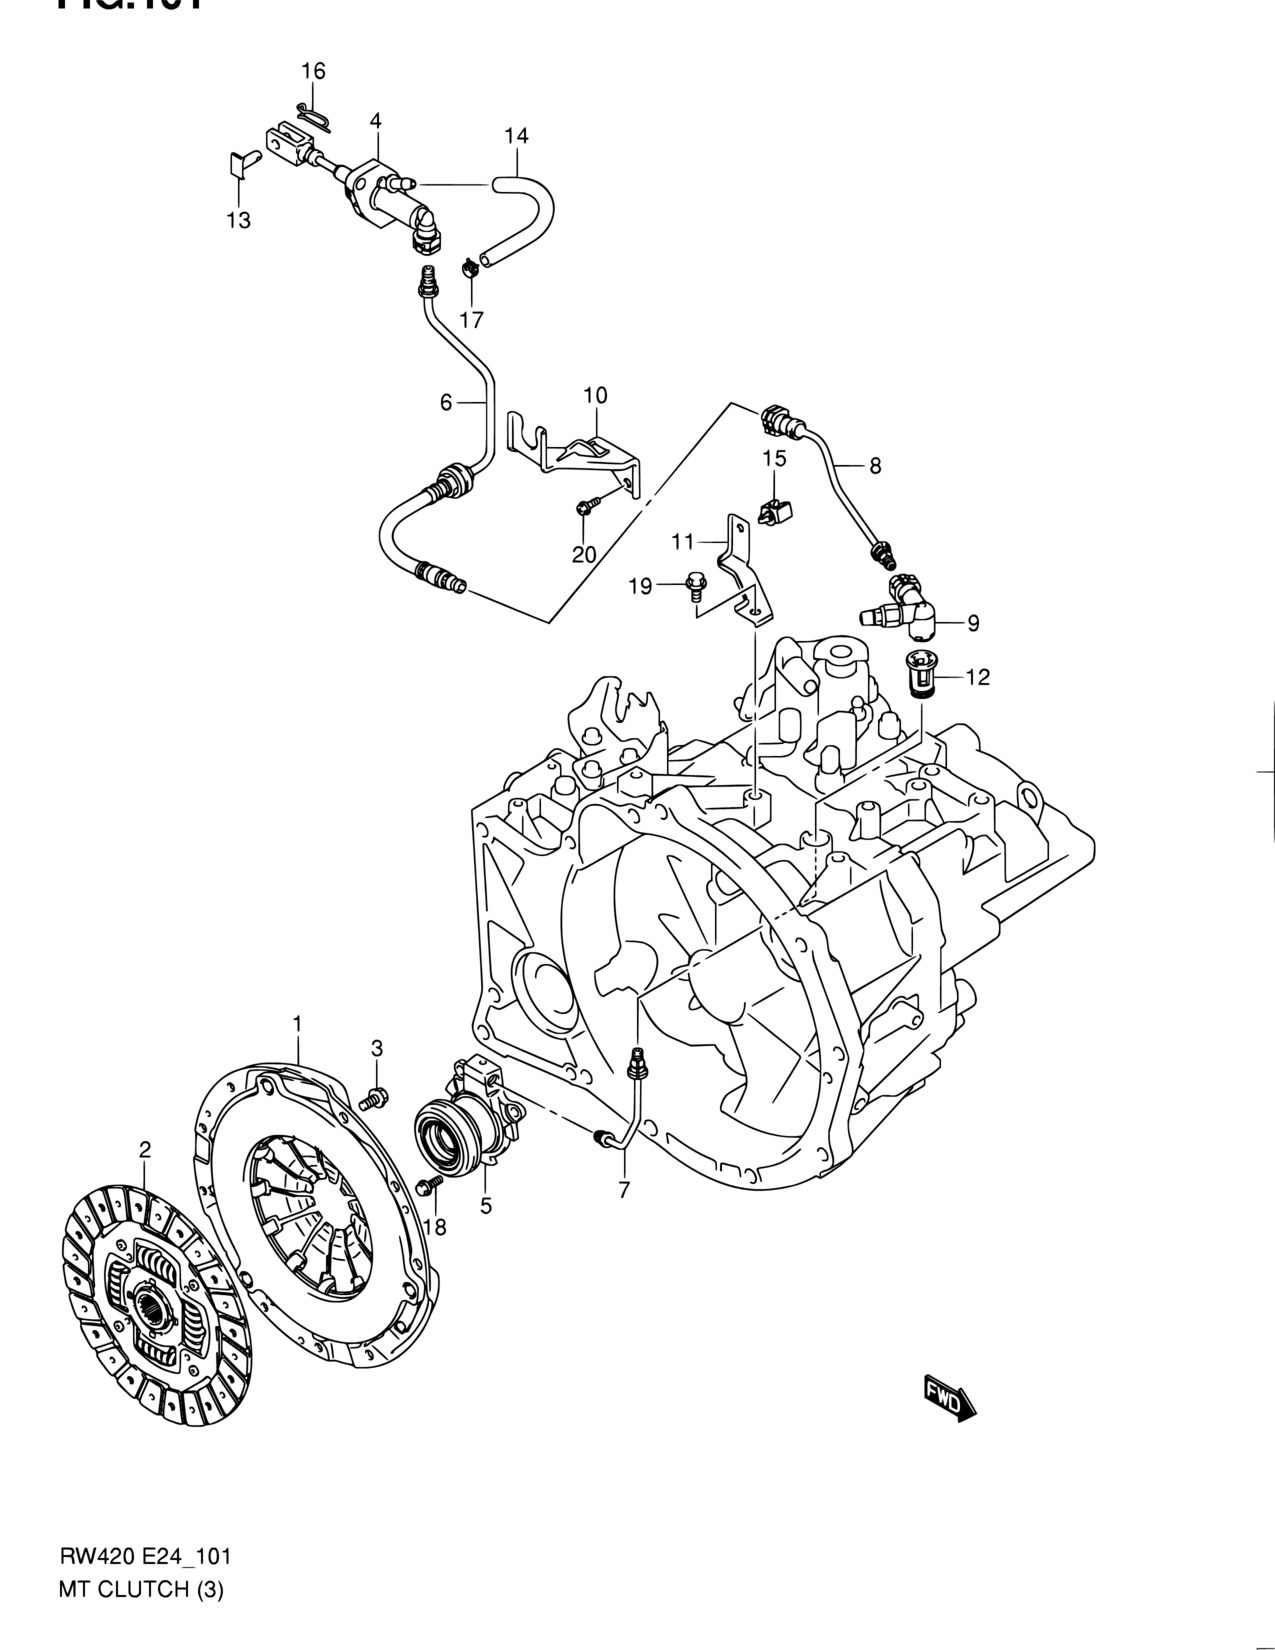 hight resolution of europe sx4 rw416 2 transmission 101 mt clutch 6mt lhd caterpillar clutch diagram suzuki sx4 clutch diagram